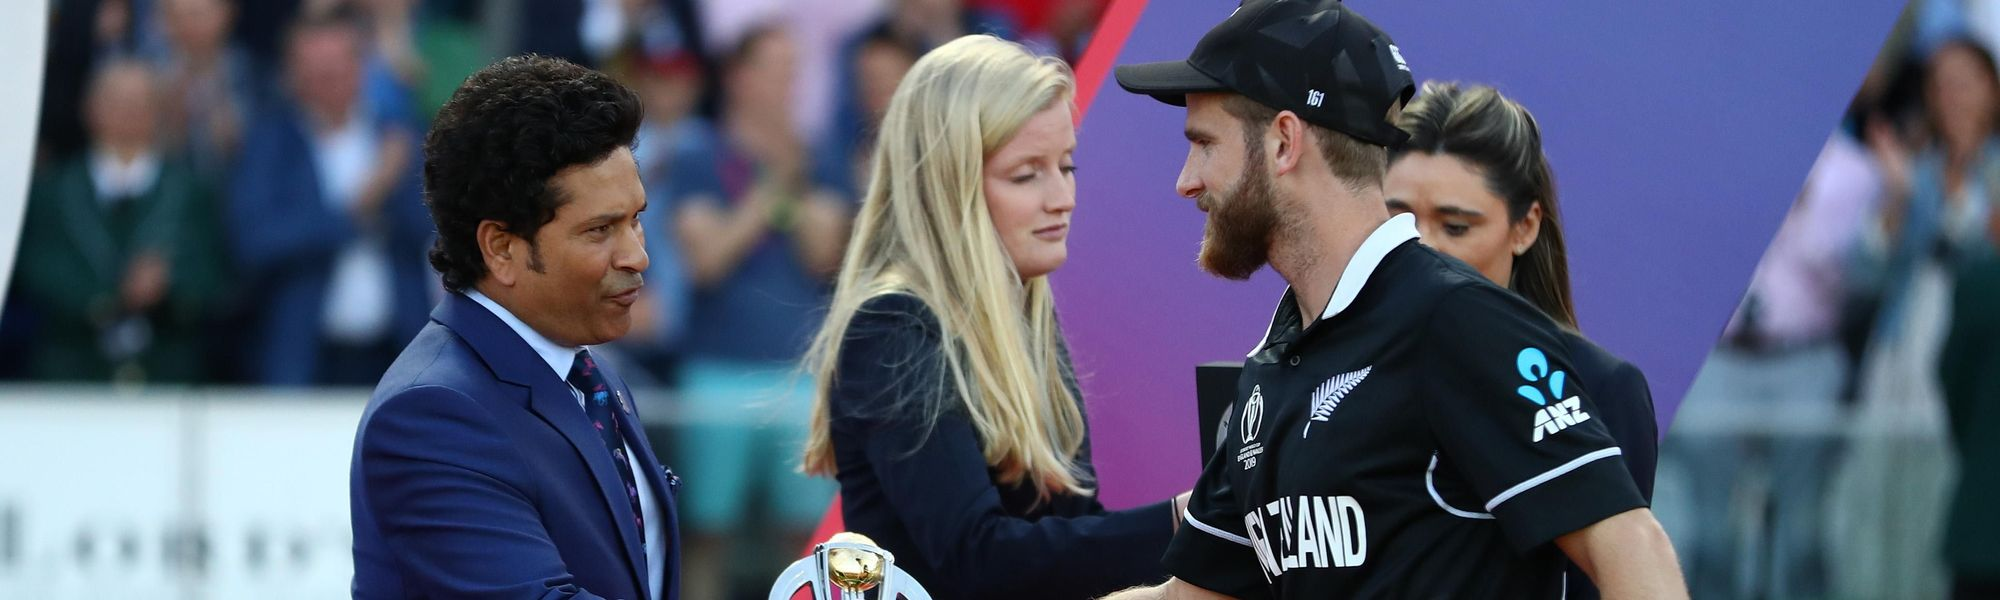 Kane Williamson the New Zealand captain receives the player of the tournament award from Sachin Tendulkar at the presentation ceremony.